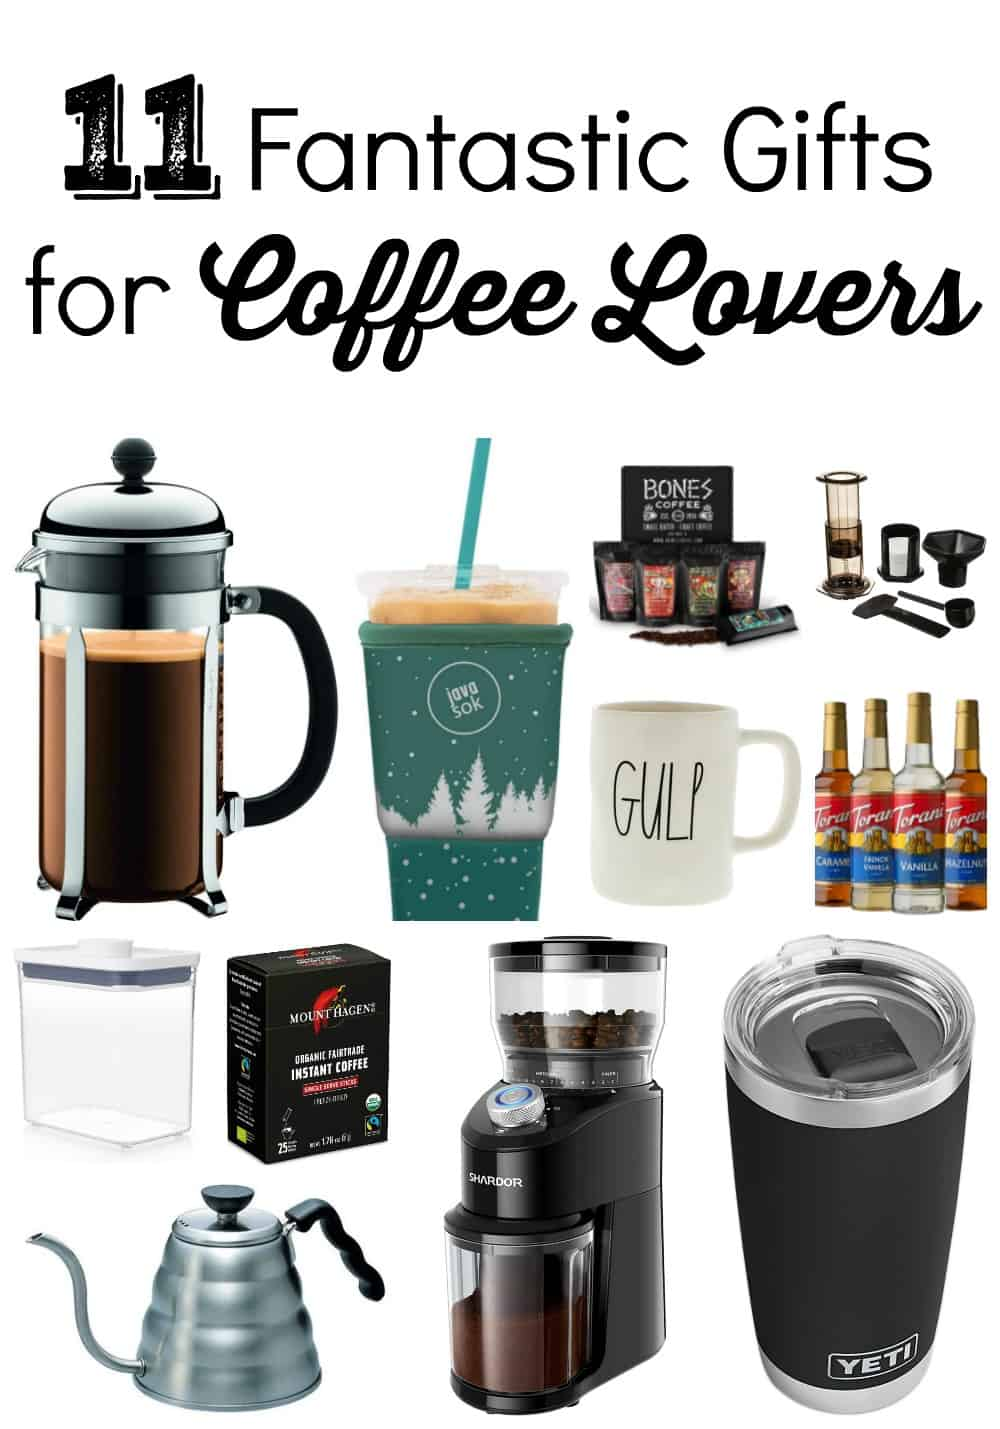 Do you know someone who loves coffee?  If so, here are 12 fantastic gifts for coffee lovers that you'll definitely want to check out!